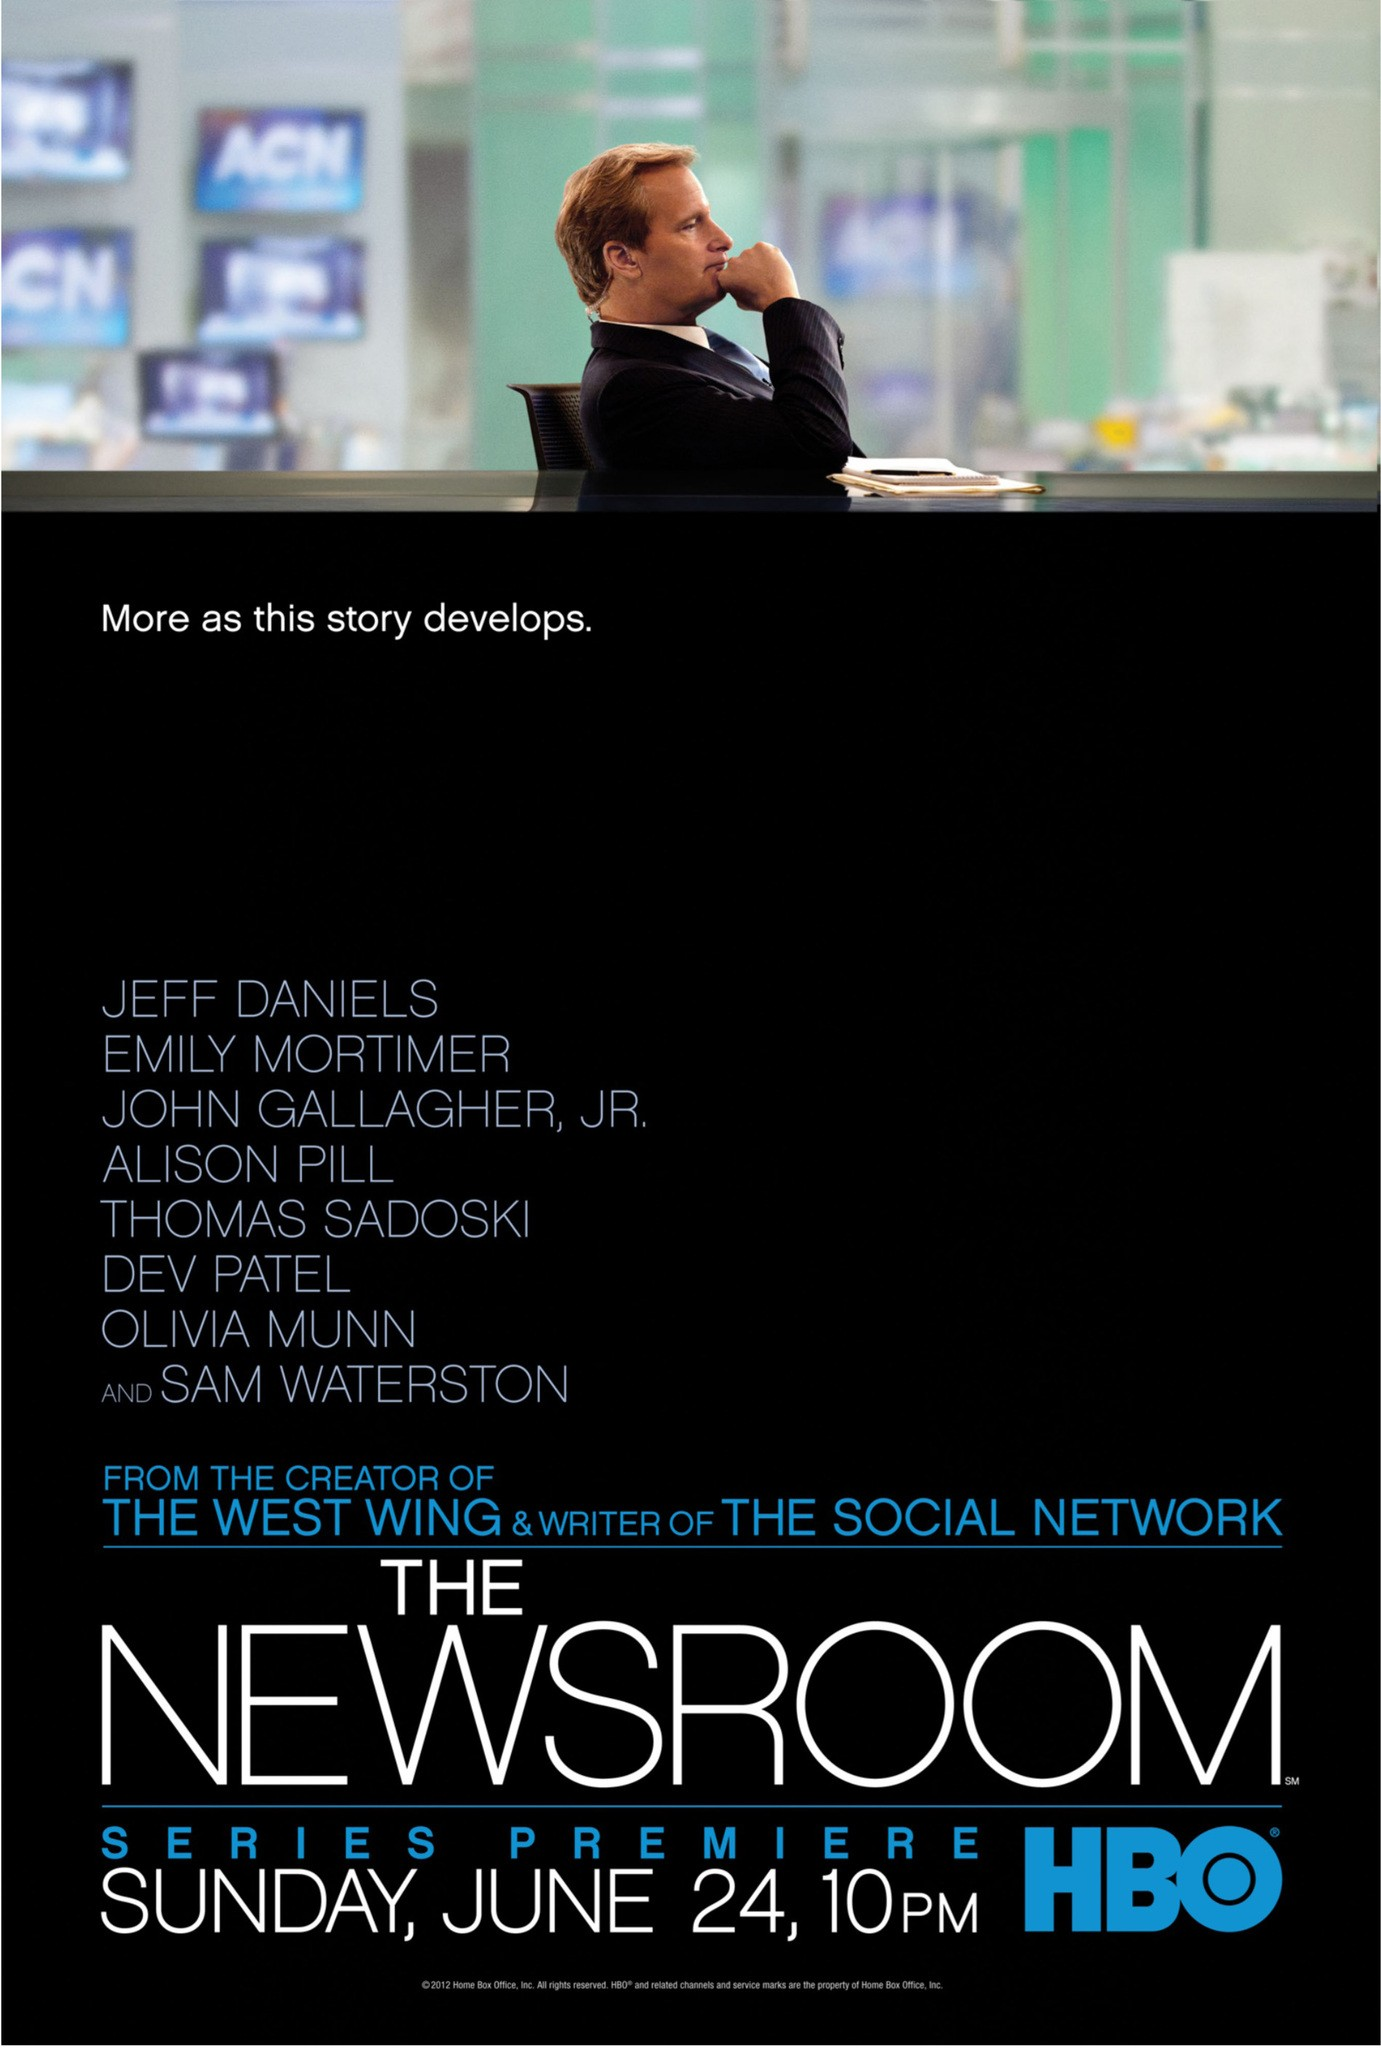 The Newsroom S01 E04 – I'll Try To Fix You | The Mind Reels